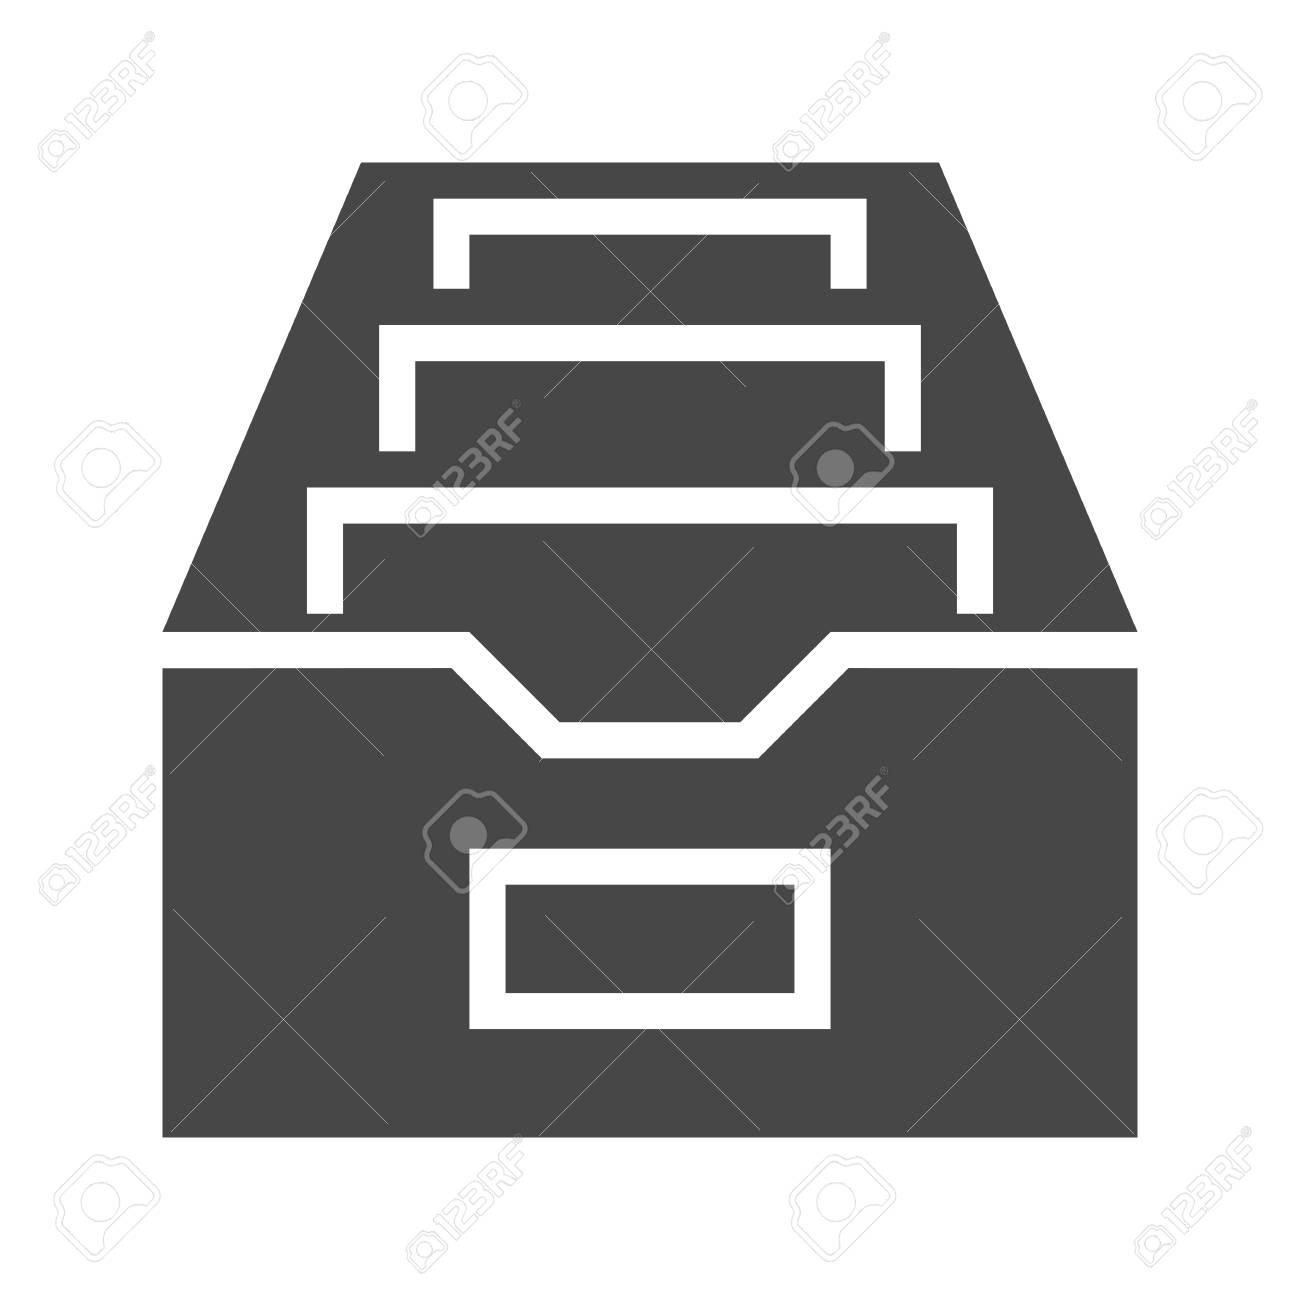 Filing Cabinet Icon Flat File Cabinet Flat Vector Icon Flat Icon Isolated On The White